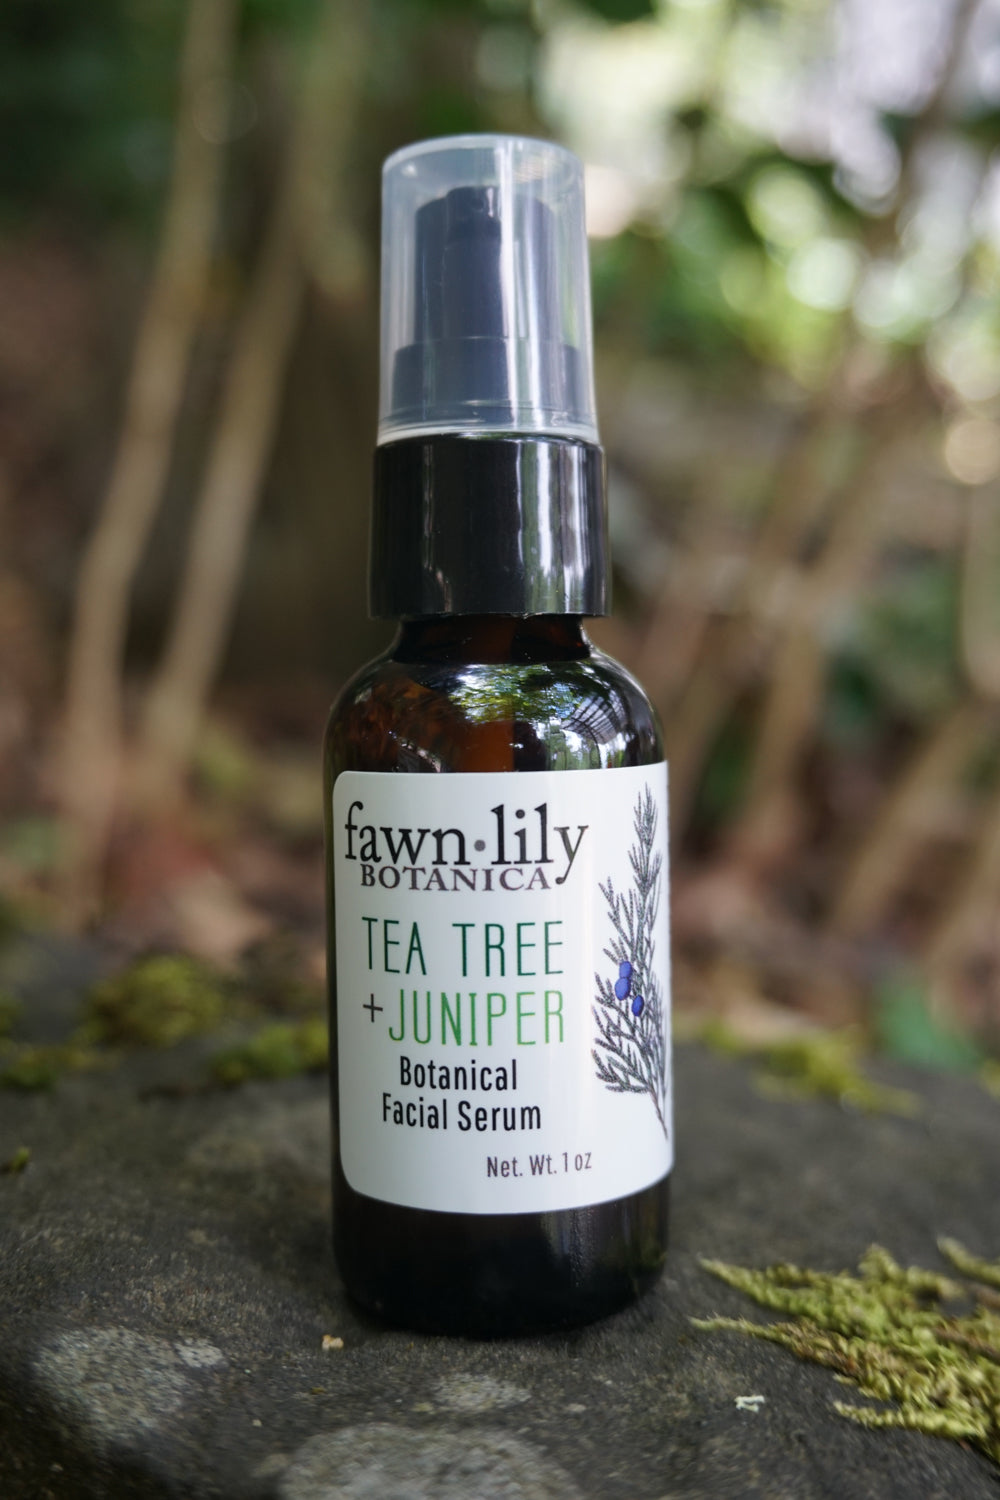 TEA TREE + JUNIPER BOTANICAL FACIAL SERUM